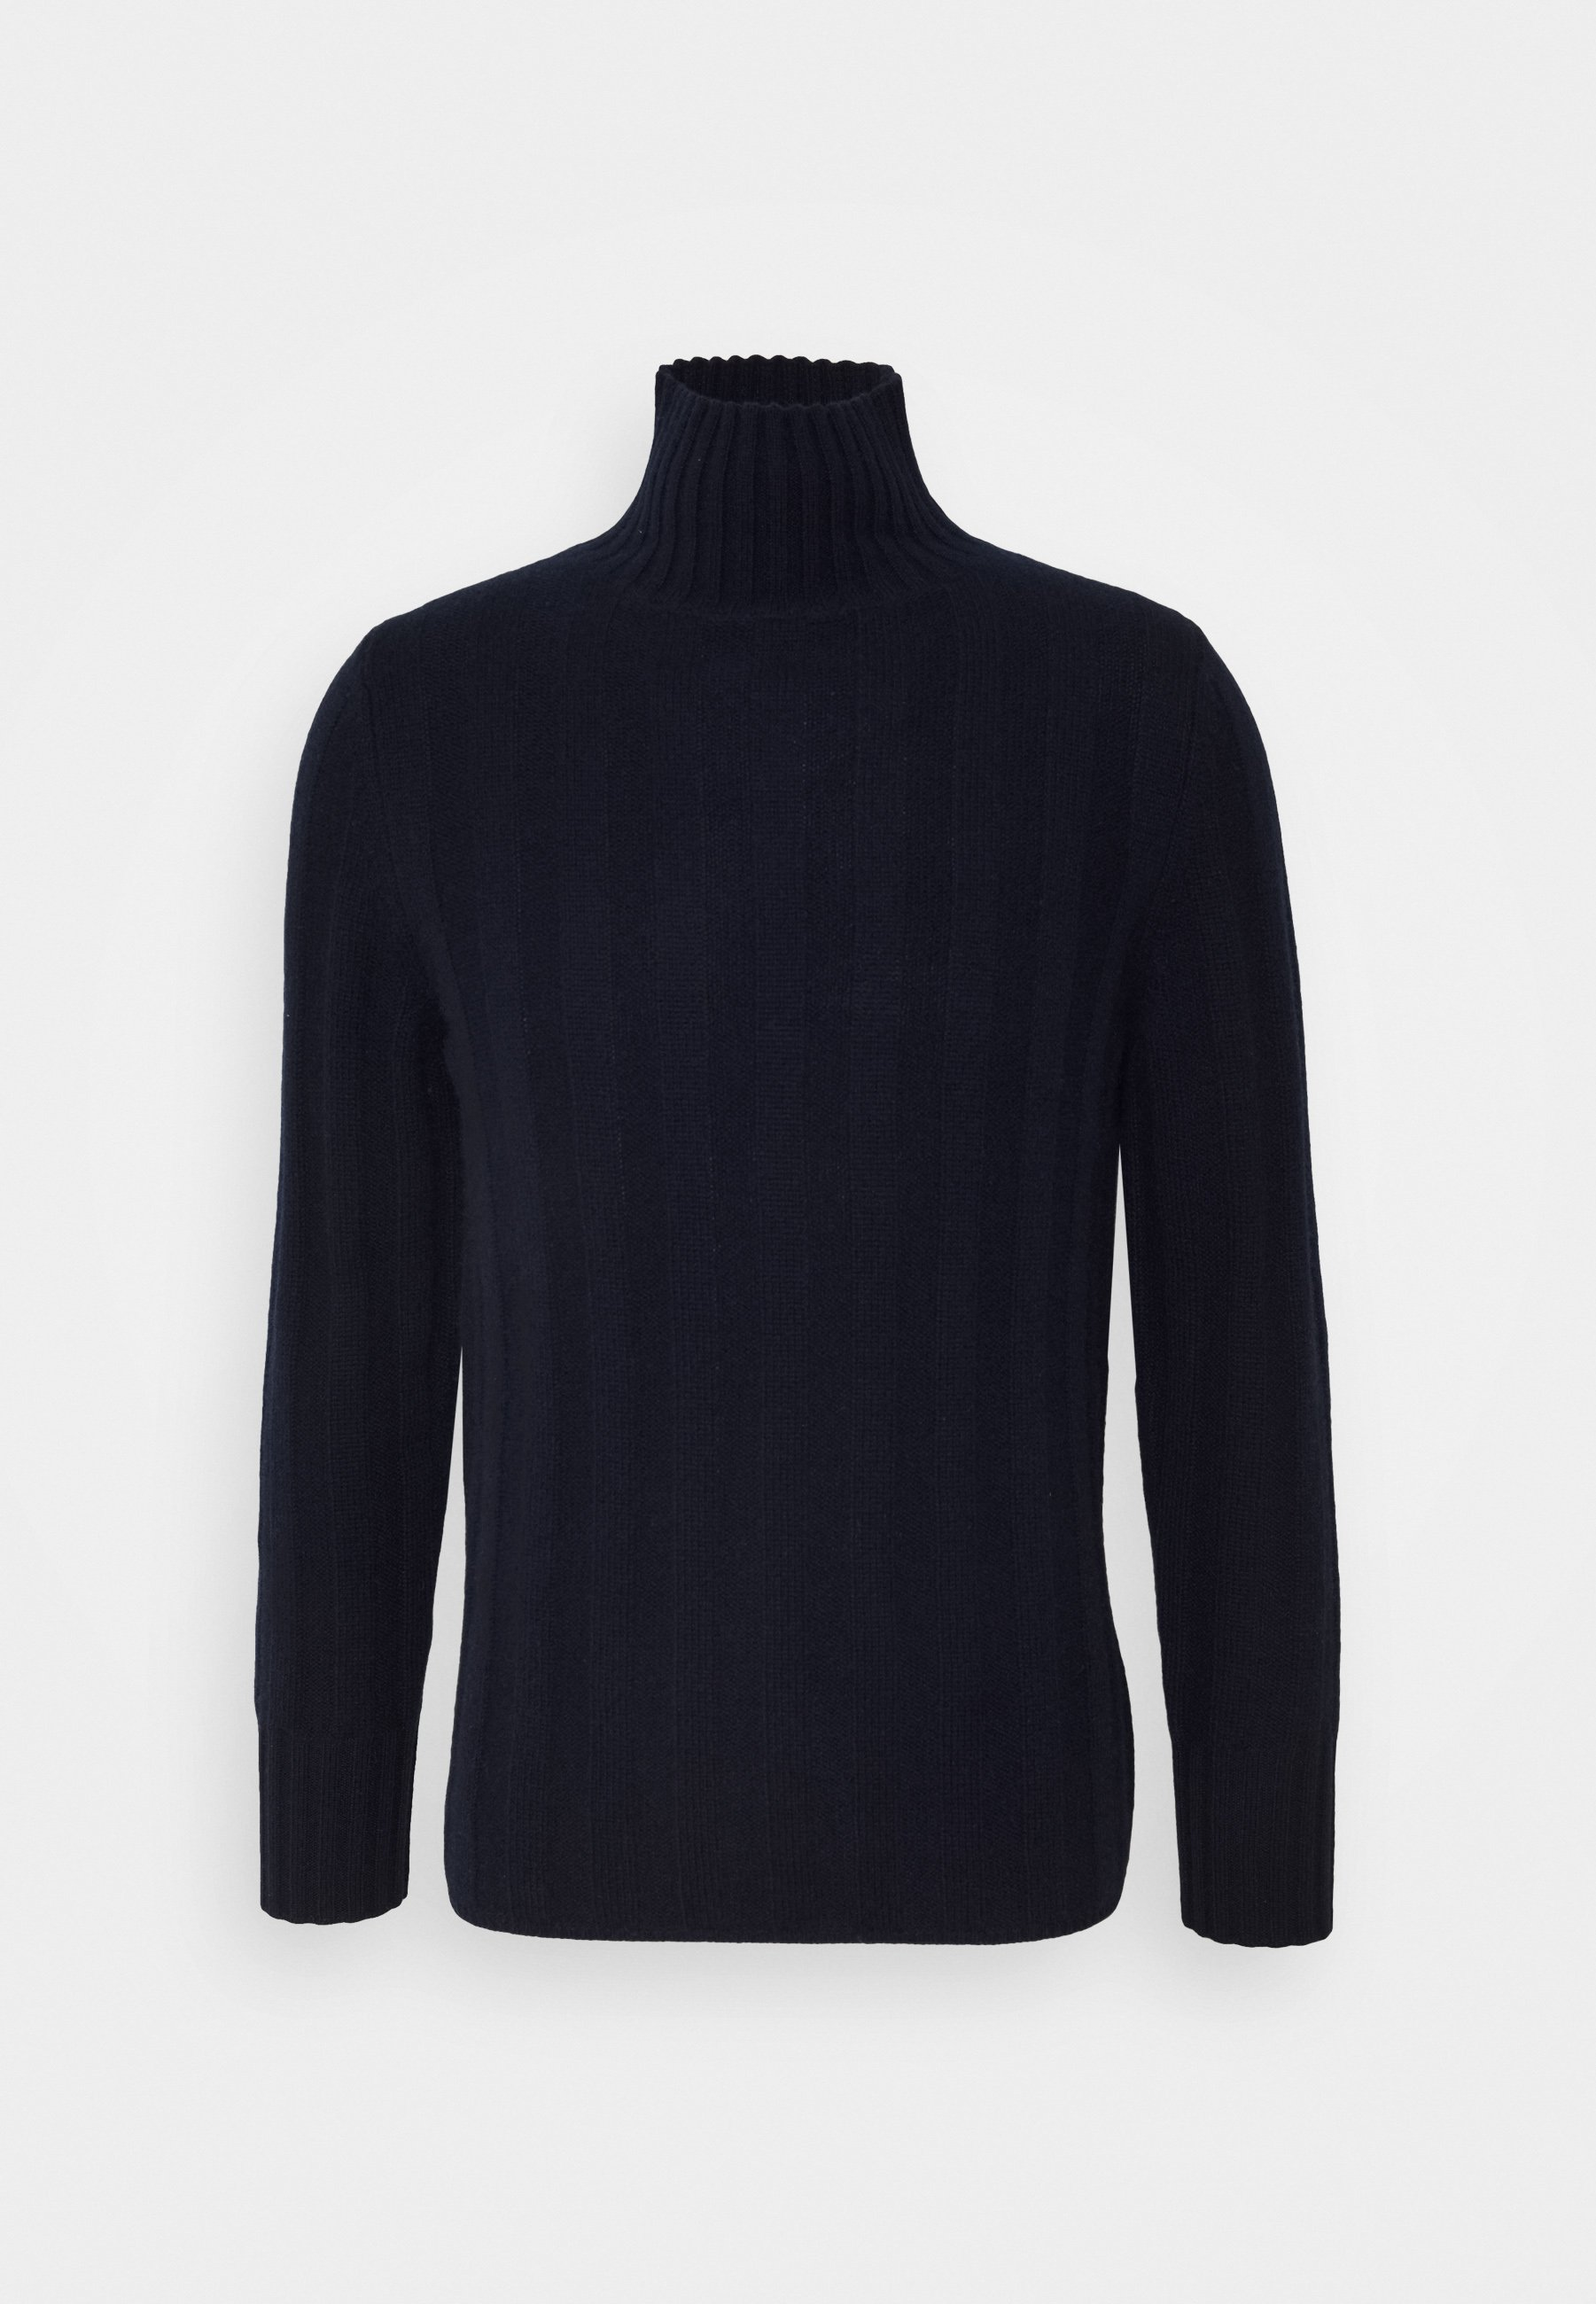 Ftc Cashmere Strickpullover - Blue Space